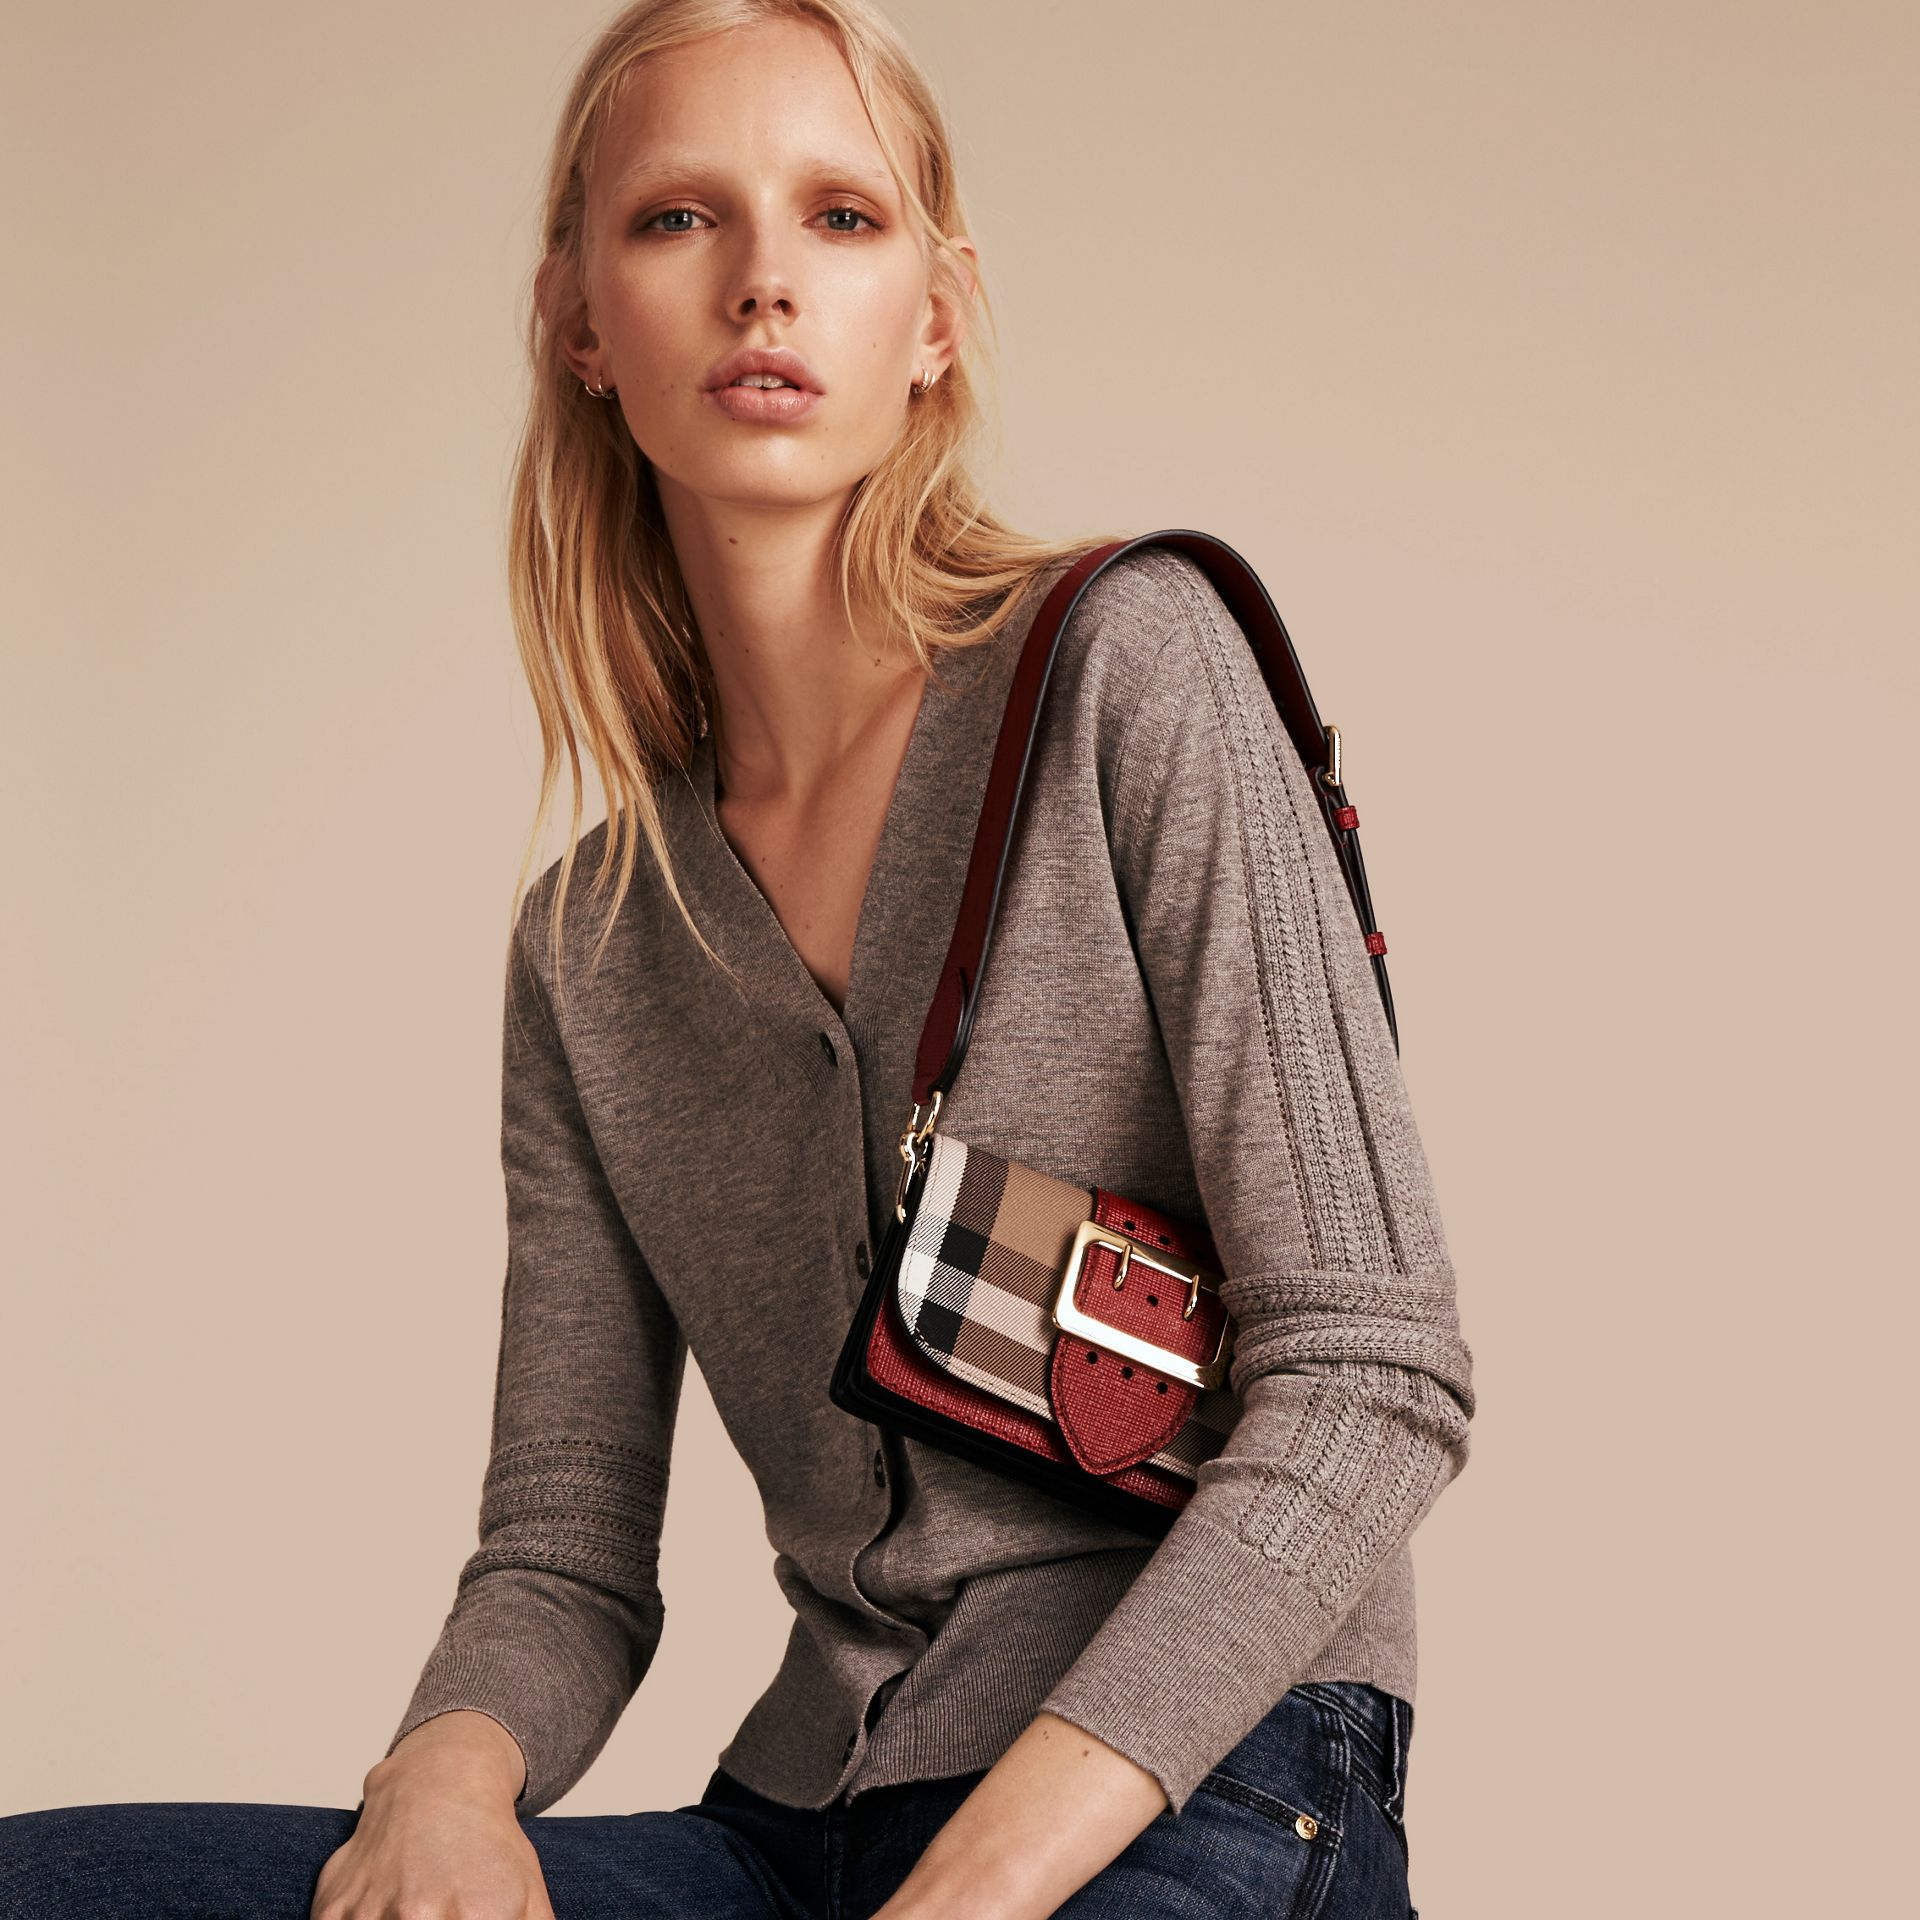 The Small Buckle Bag in House Check and Leather in Military Red/military Red - Women | Burberry United States - gallery image 2